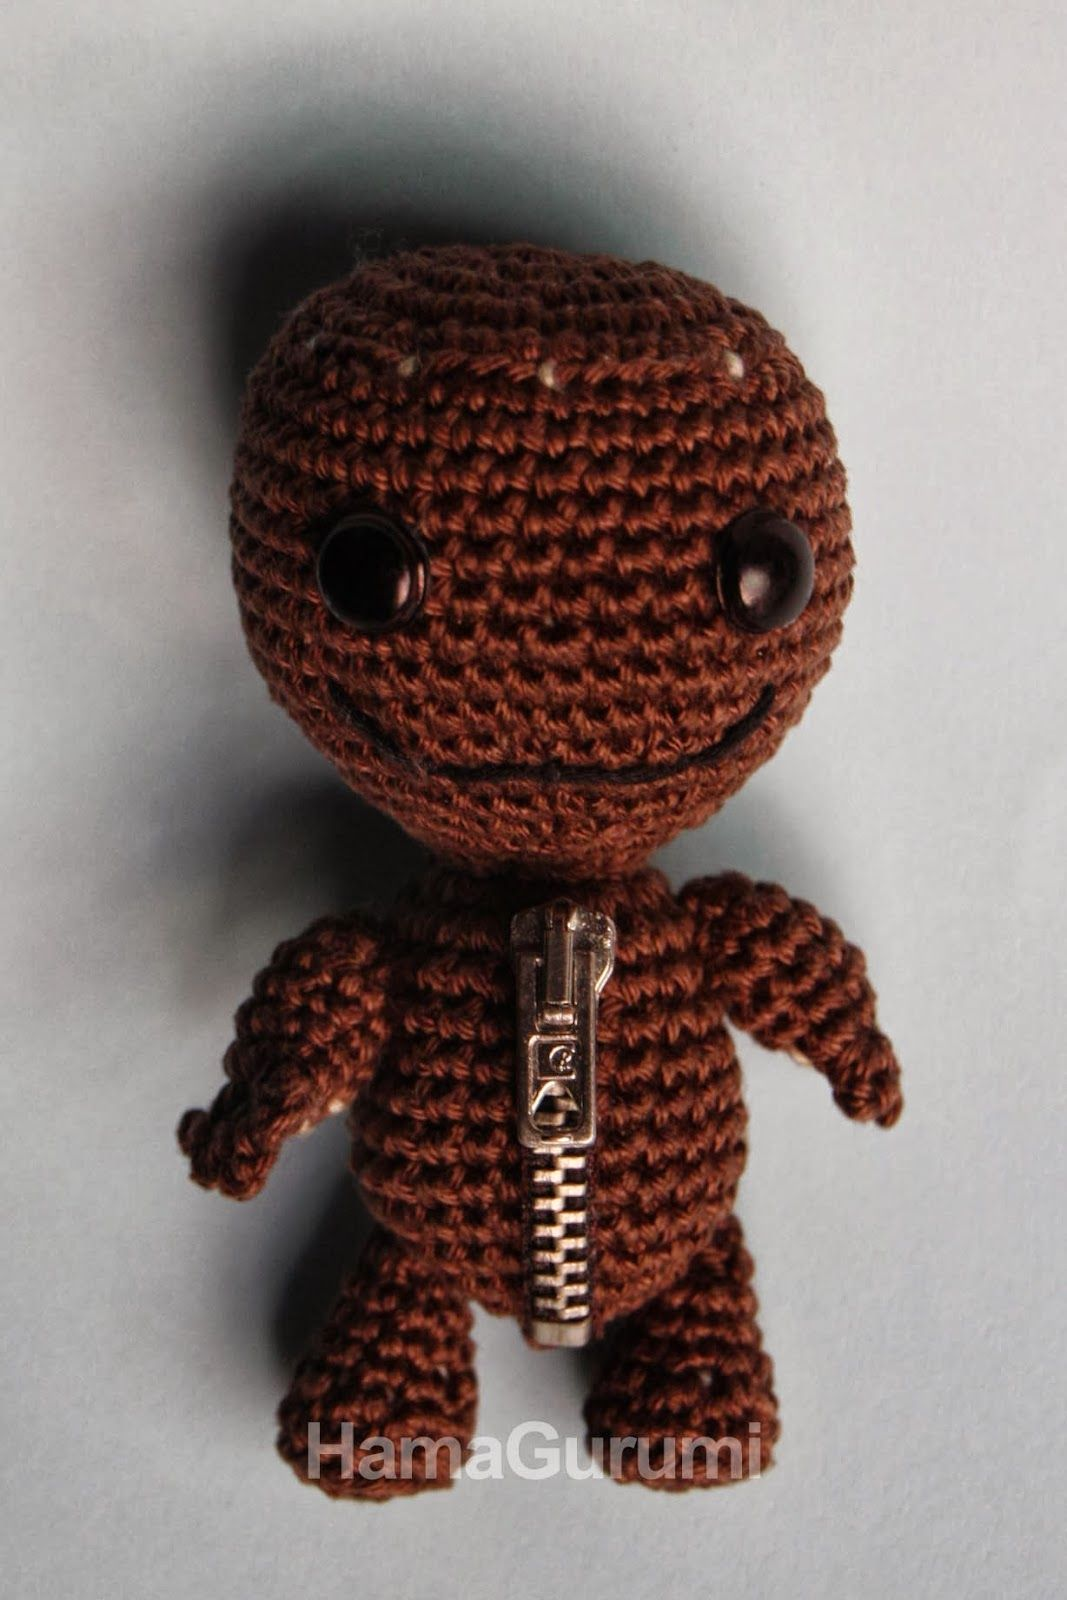 Sackboy de Little Big Planet - HamaGurumi | Crochet I Like - TV ...